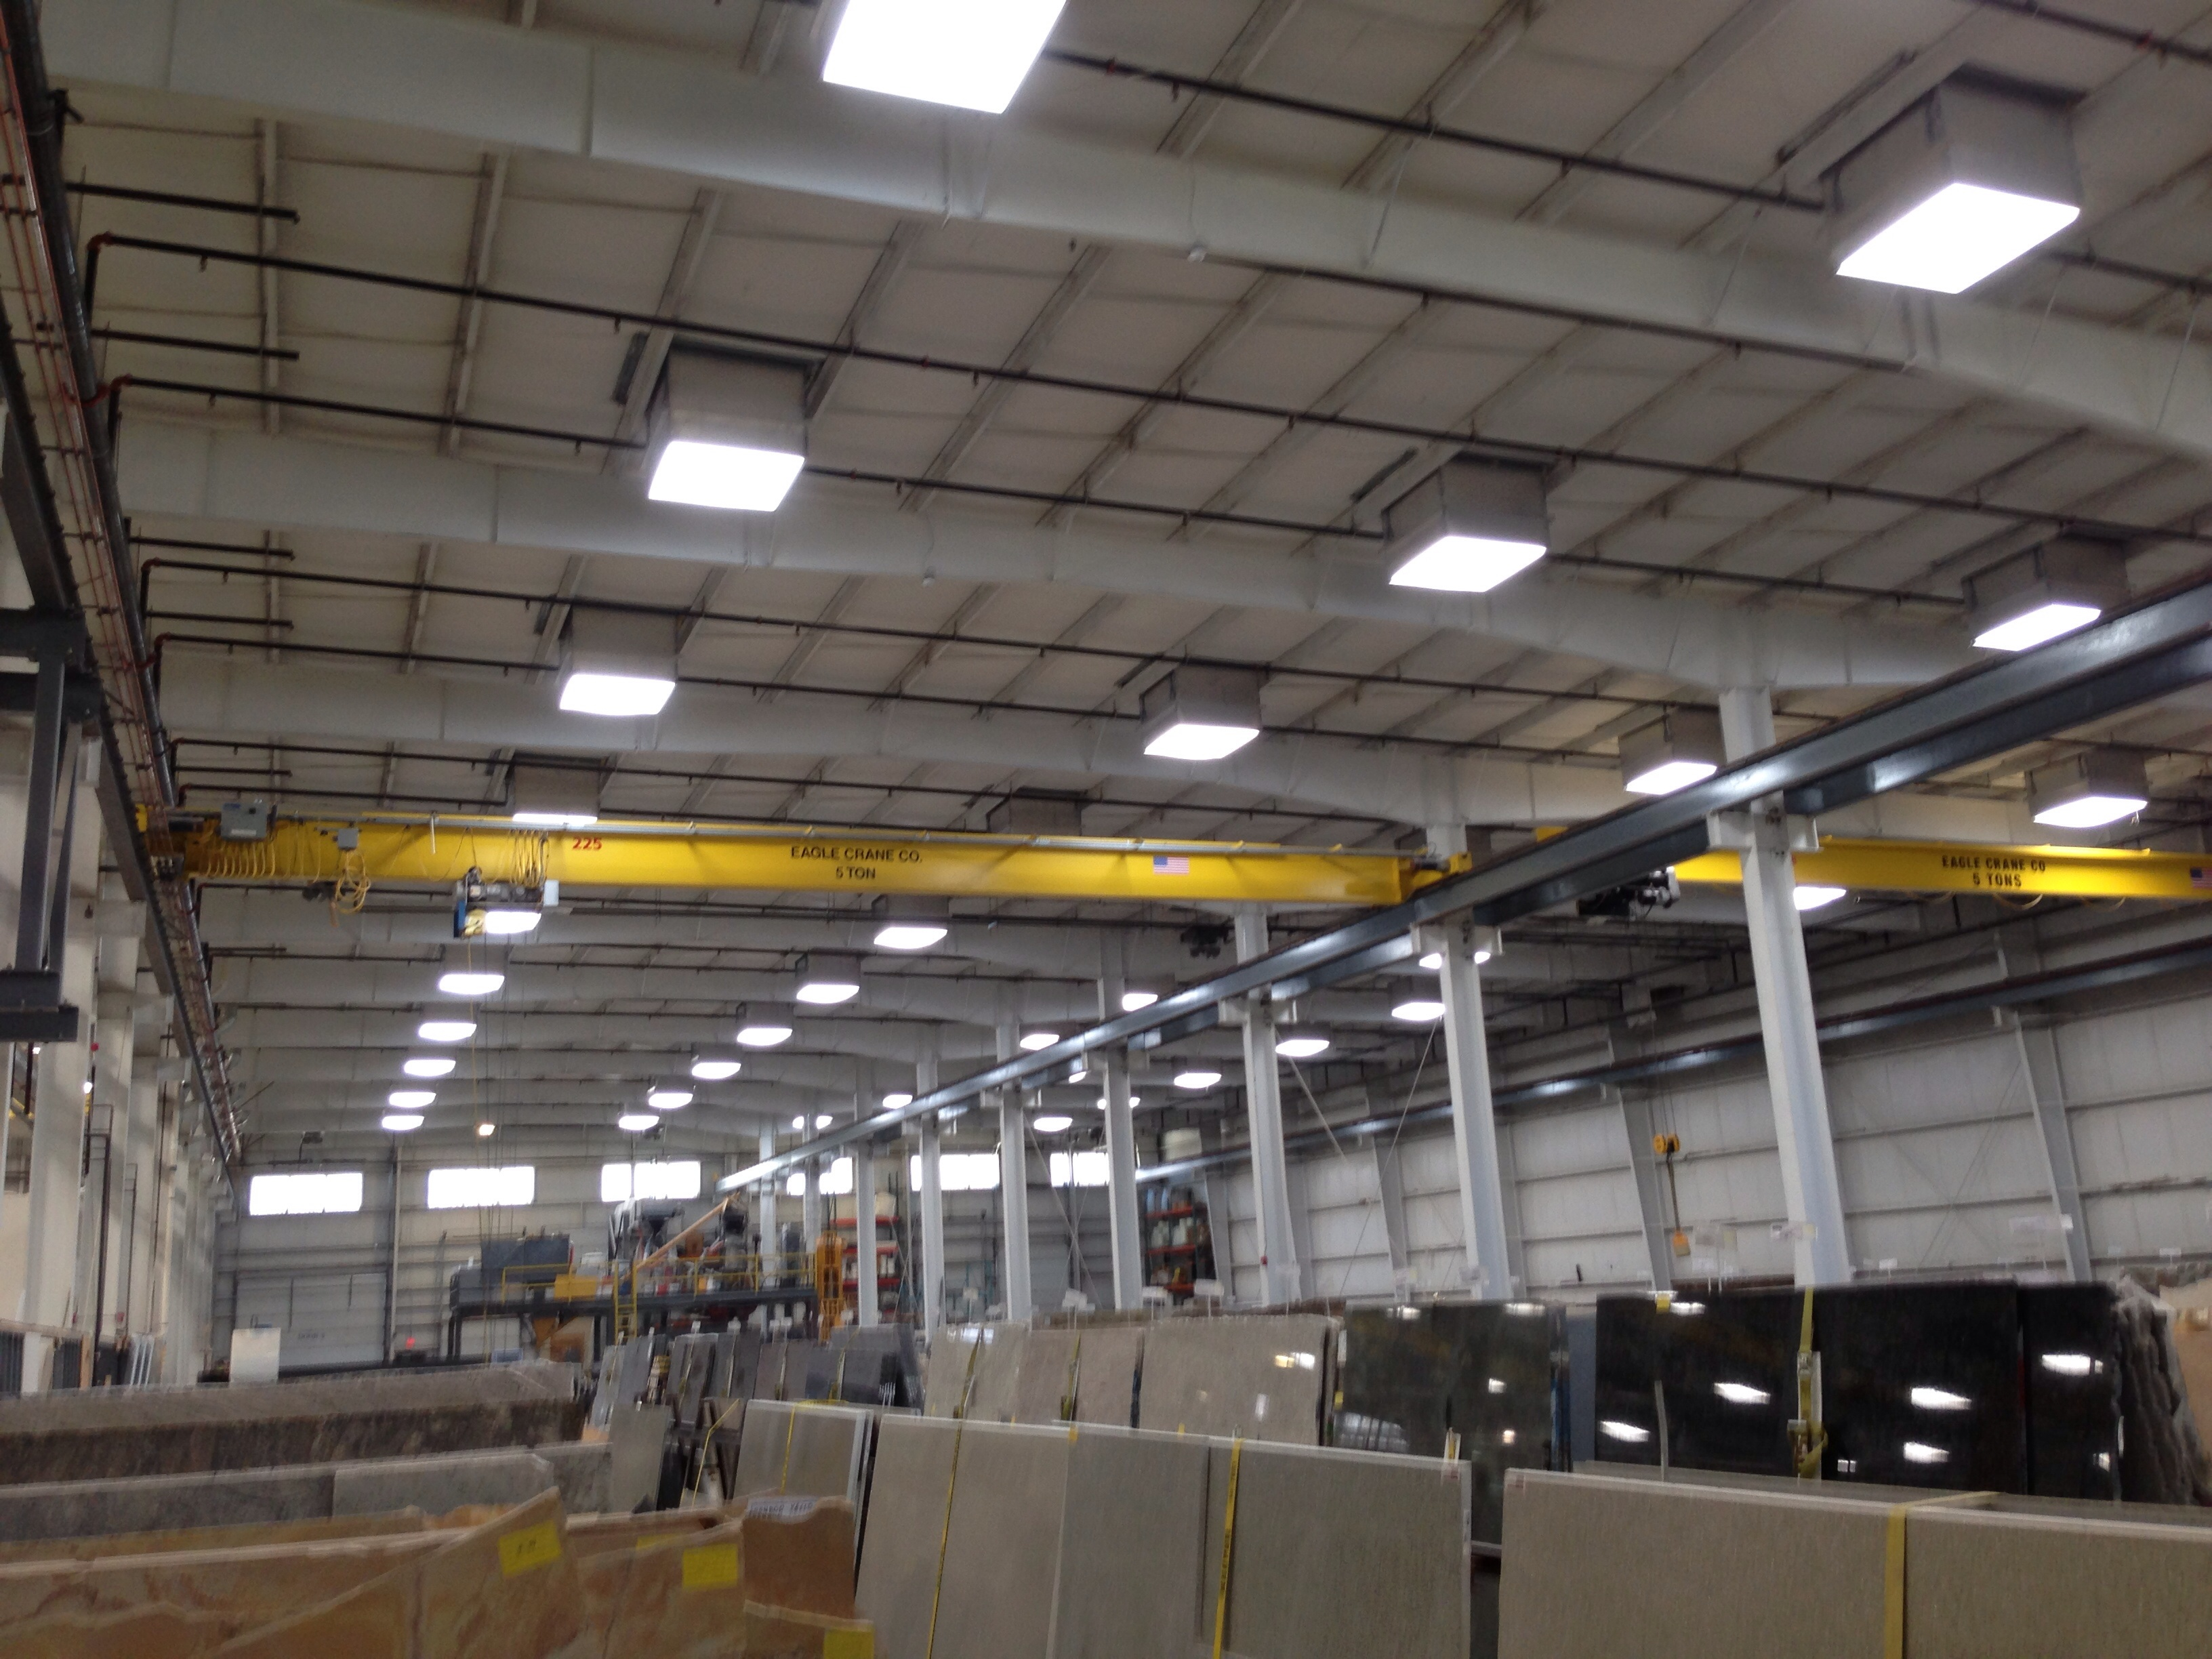 Daylight Harvesting System : Daylight harvesting system for a manufacturing facility